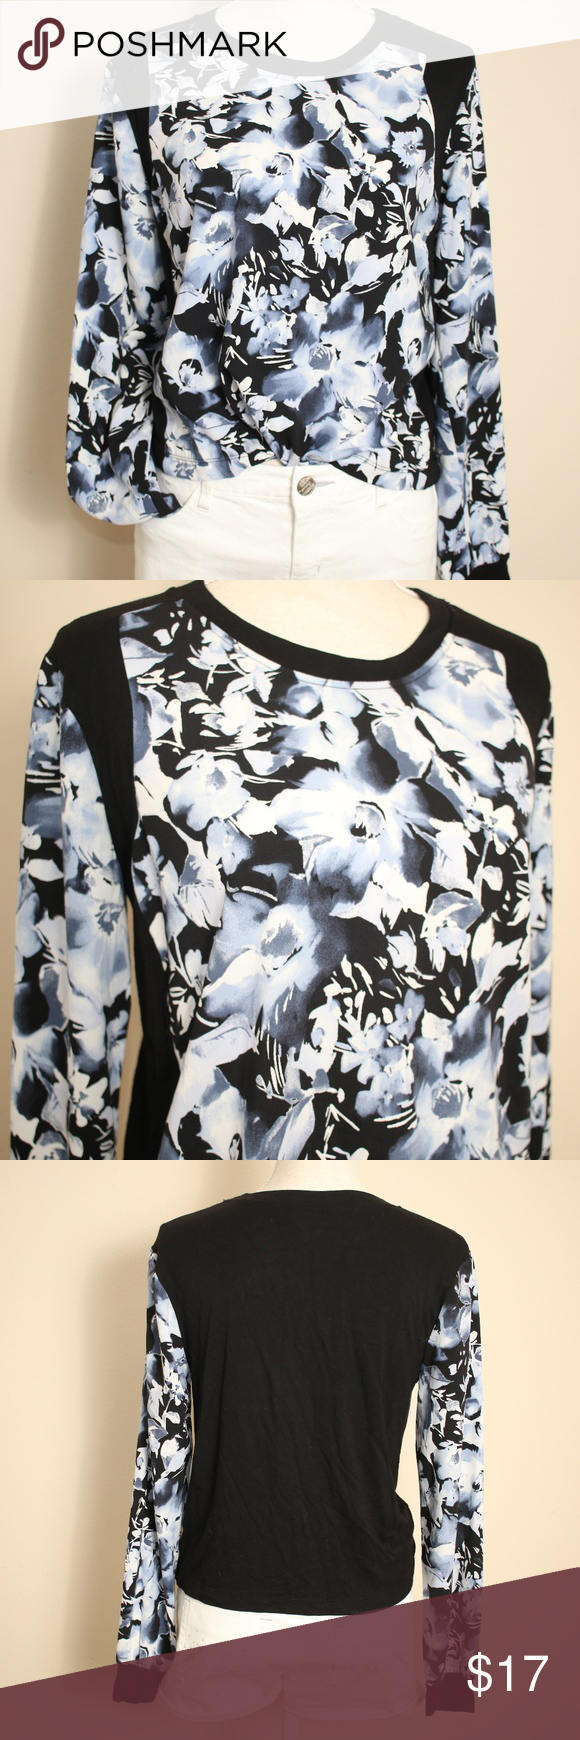 1ff067e4d15faa Forever 21 Long Sleeve Black Navy Floral Top S M Brand  Forever 21 ...